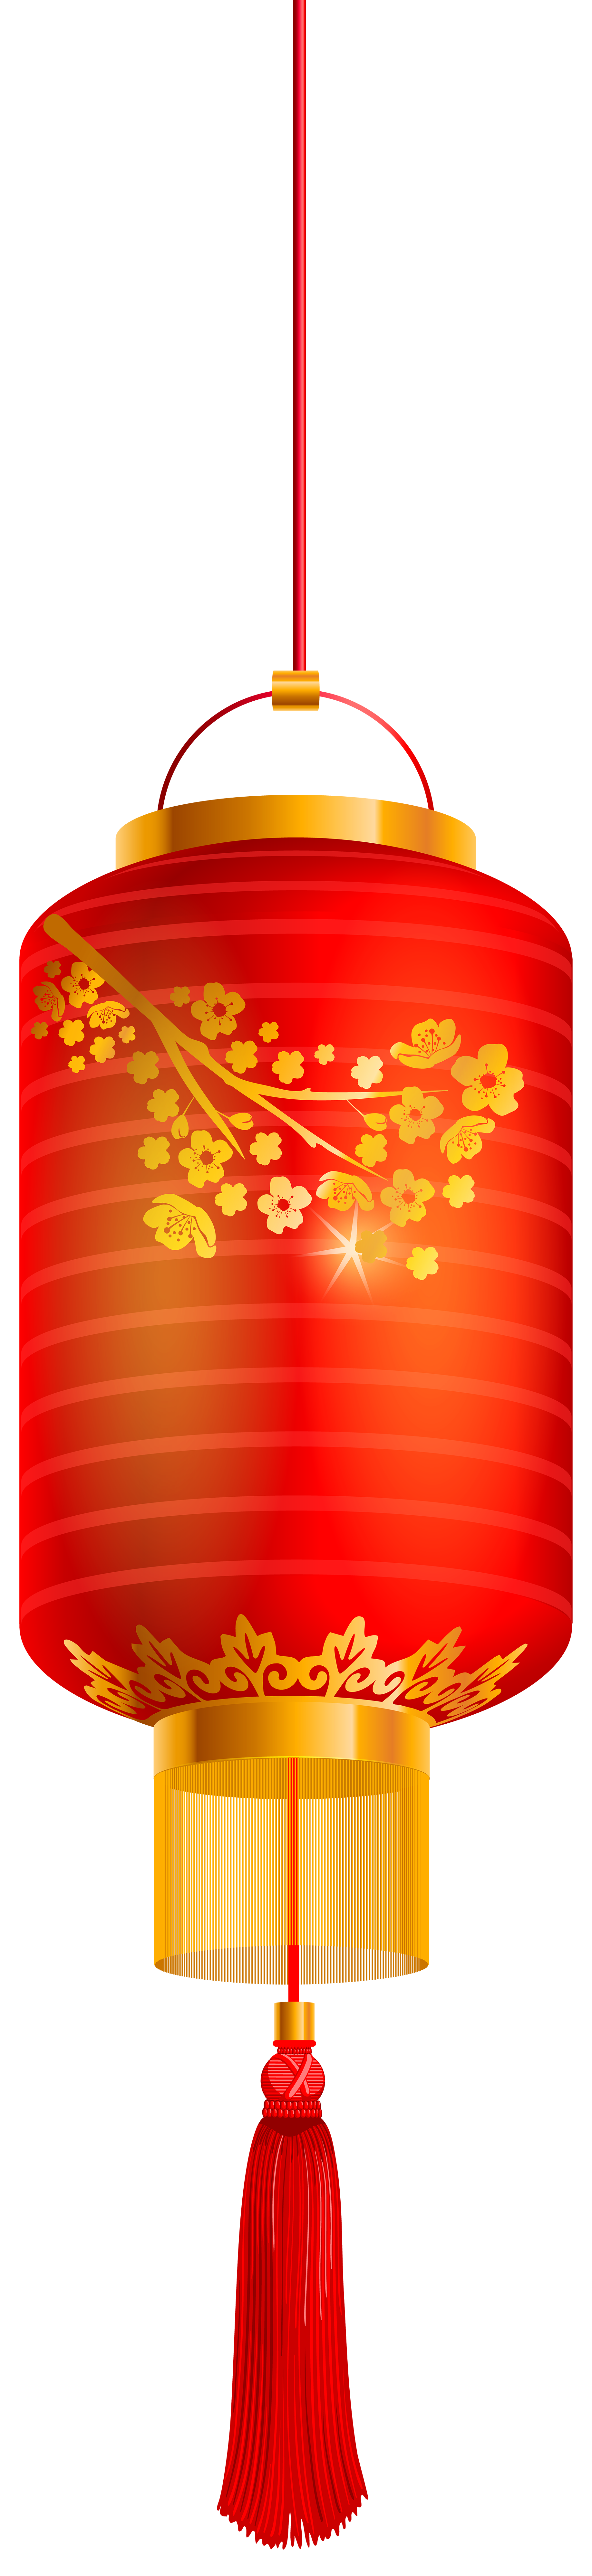 Chinese Lantern Png Clip Art Png Clip Art Lanterns Chinese Lanterns Clip Art